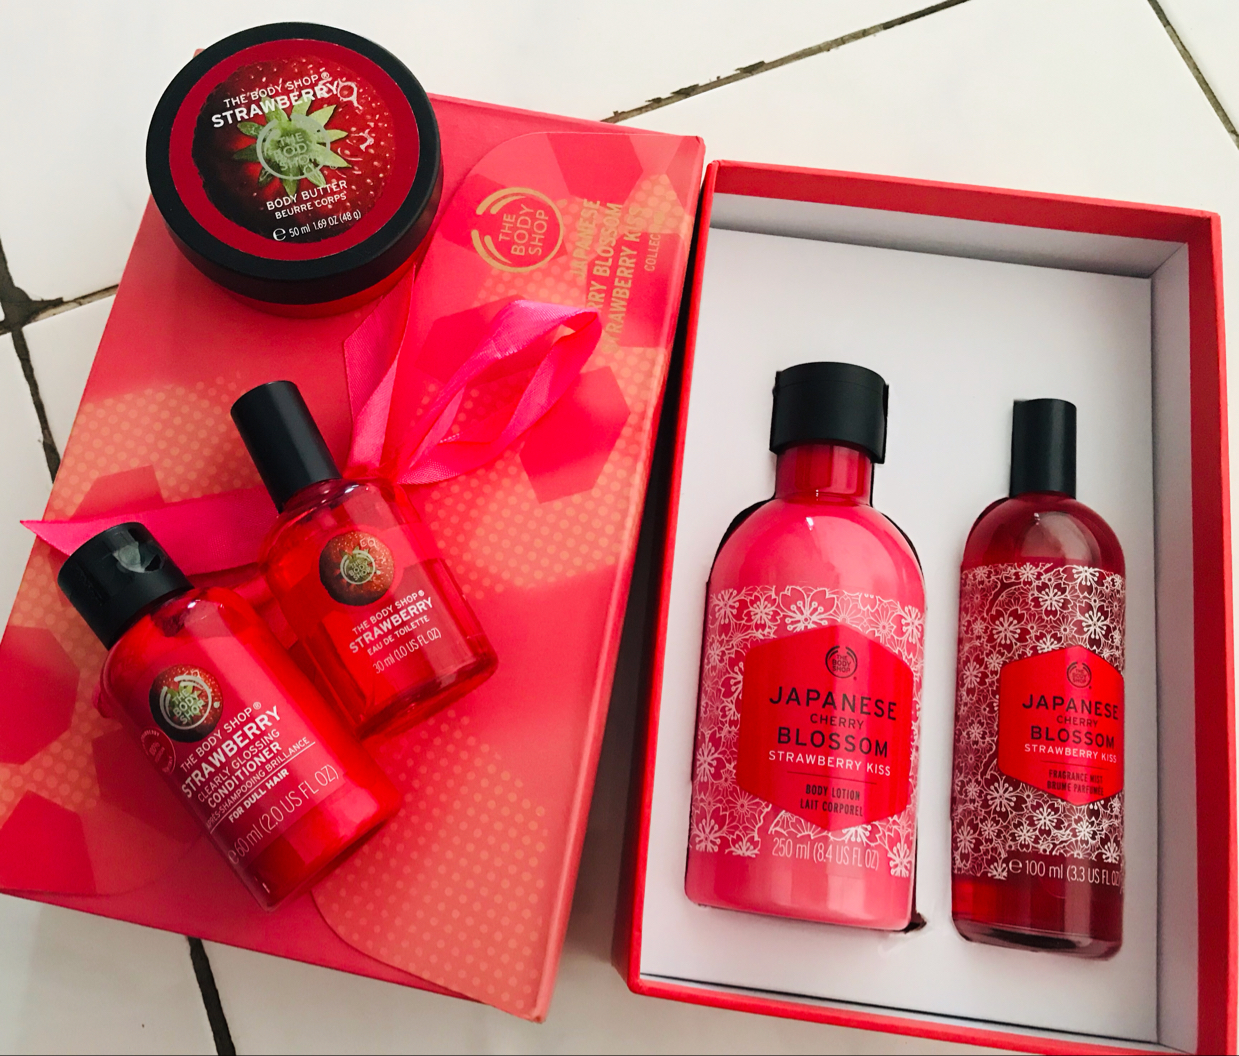 The Body Shop Japanese Cherry Blossom Strawberry Kiss Fragrance Mist Review Female Daily